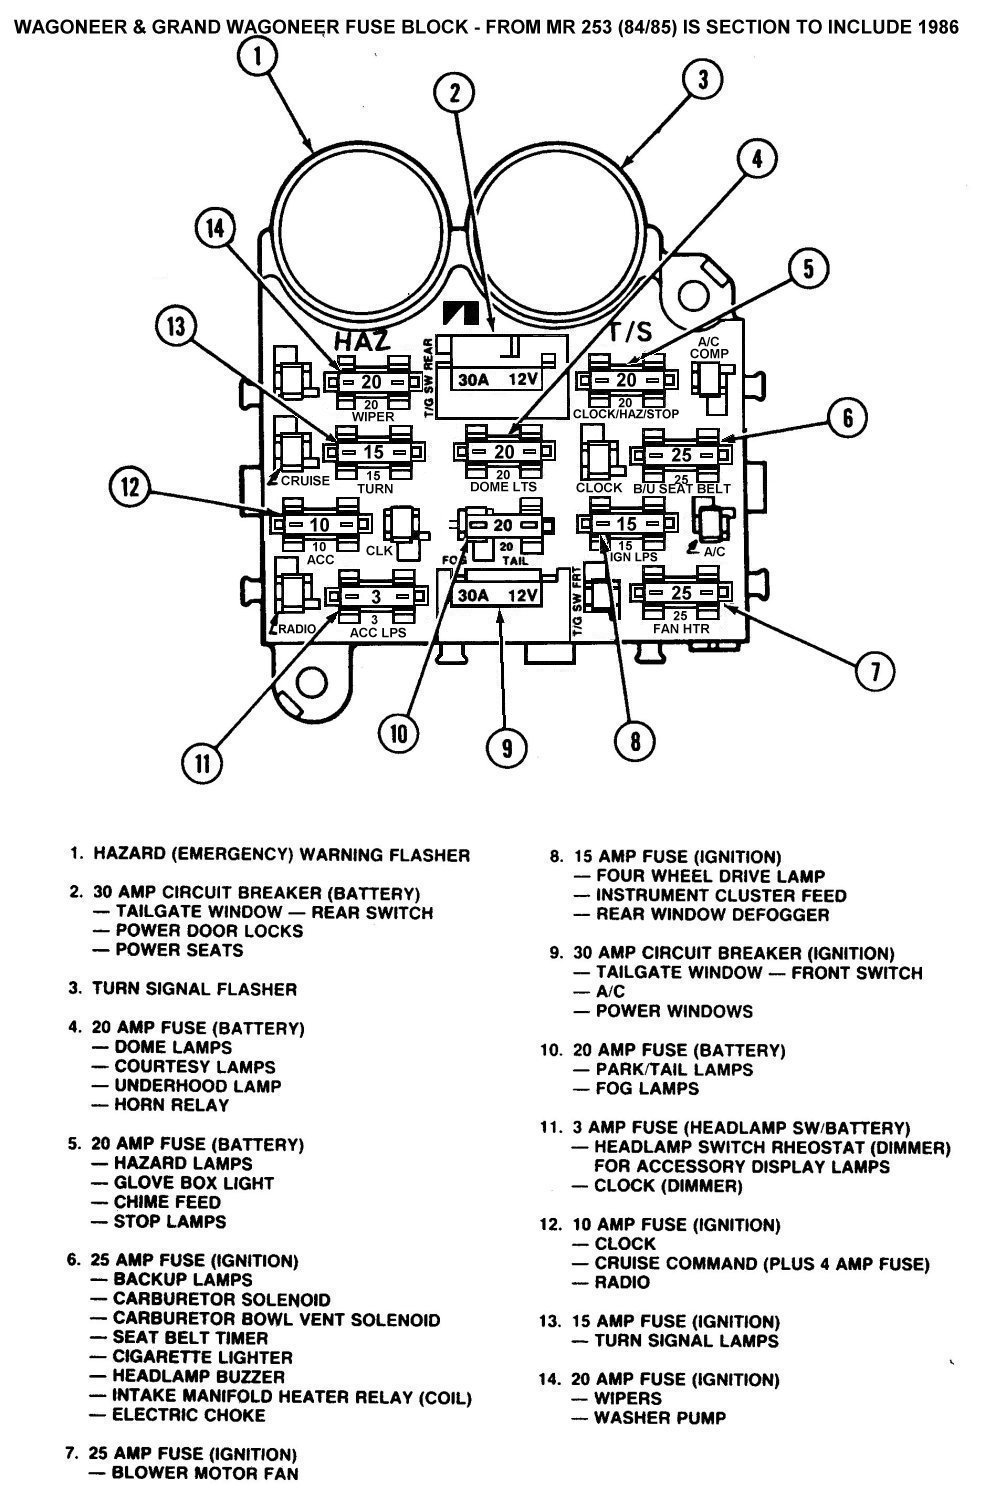 medium resolution of related with 86 corvette fuse block diagram wiring schematic